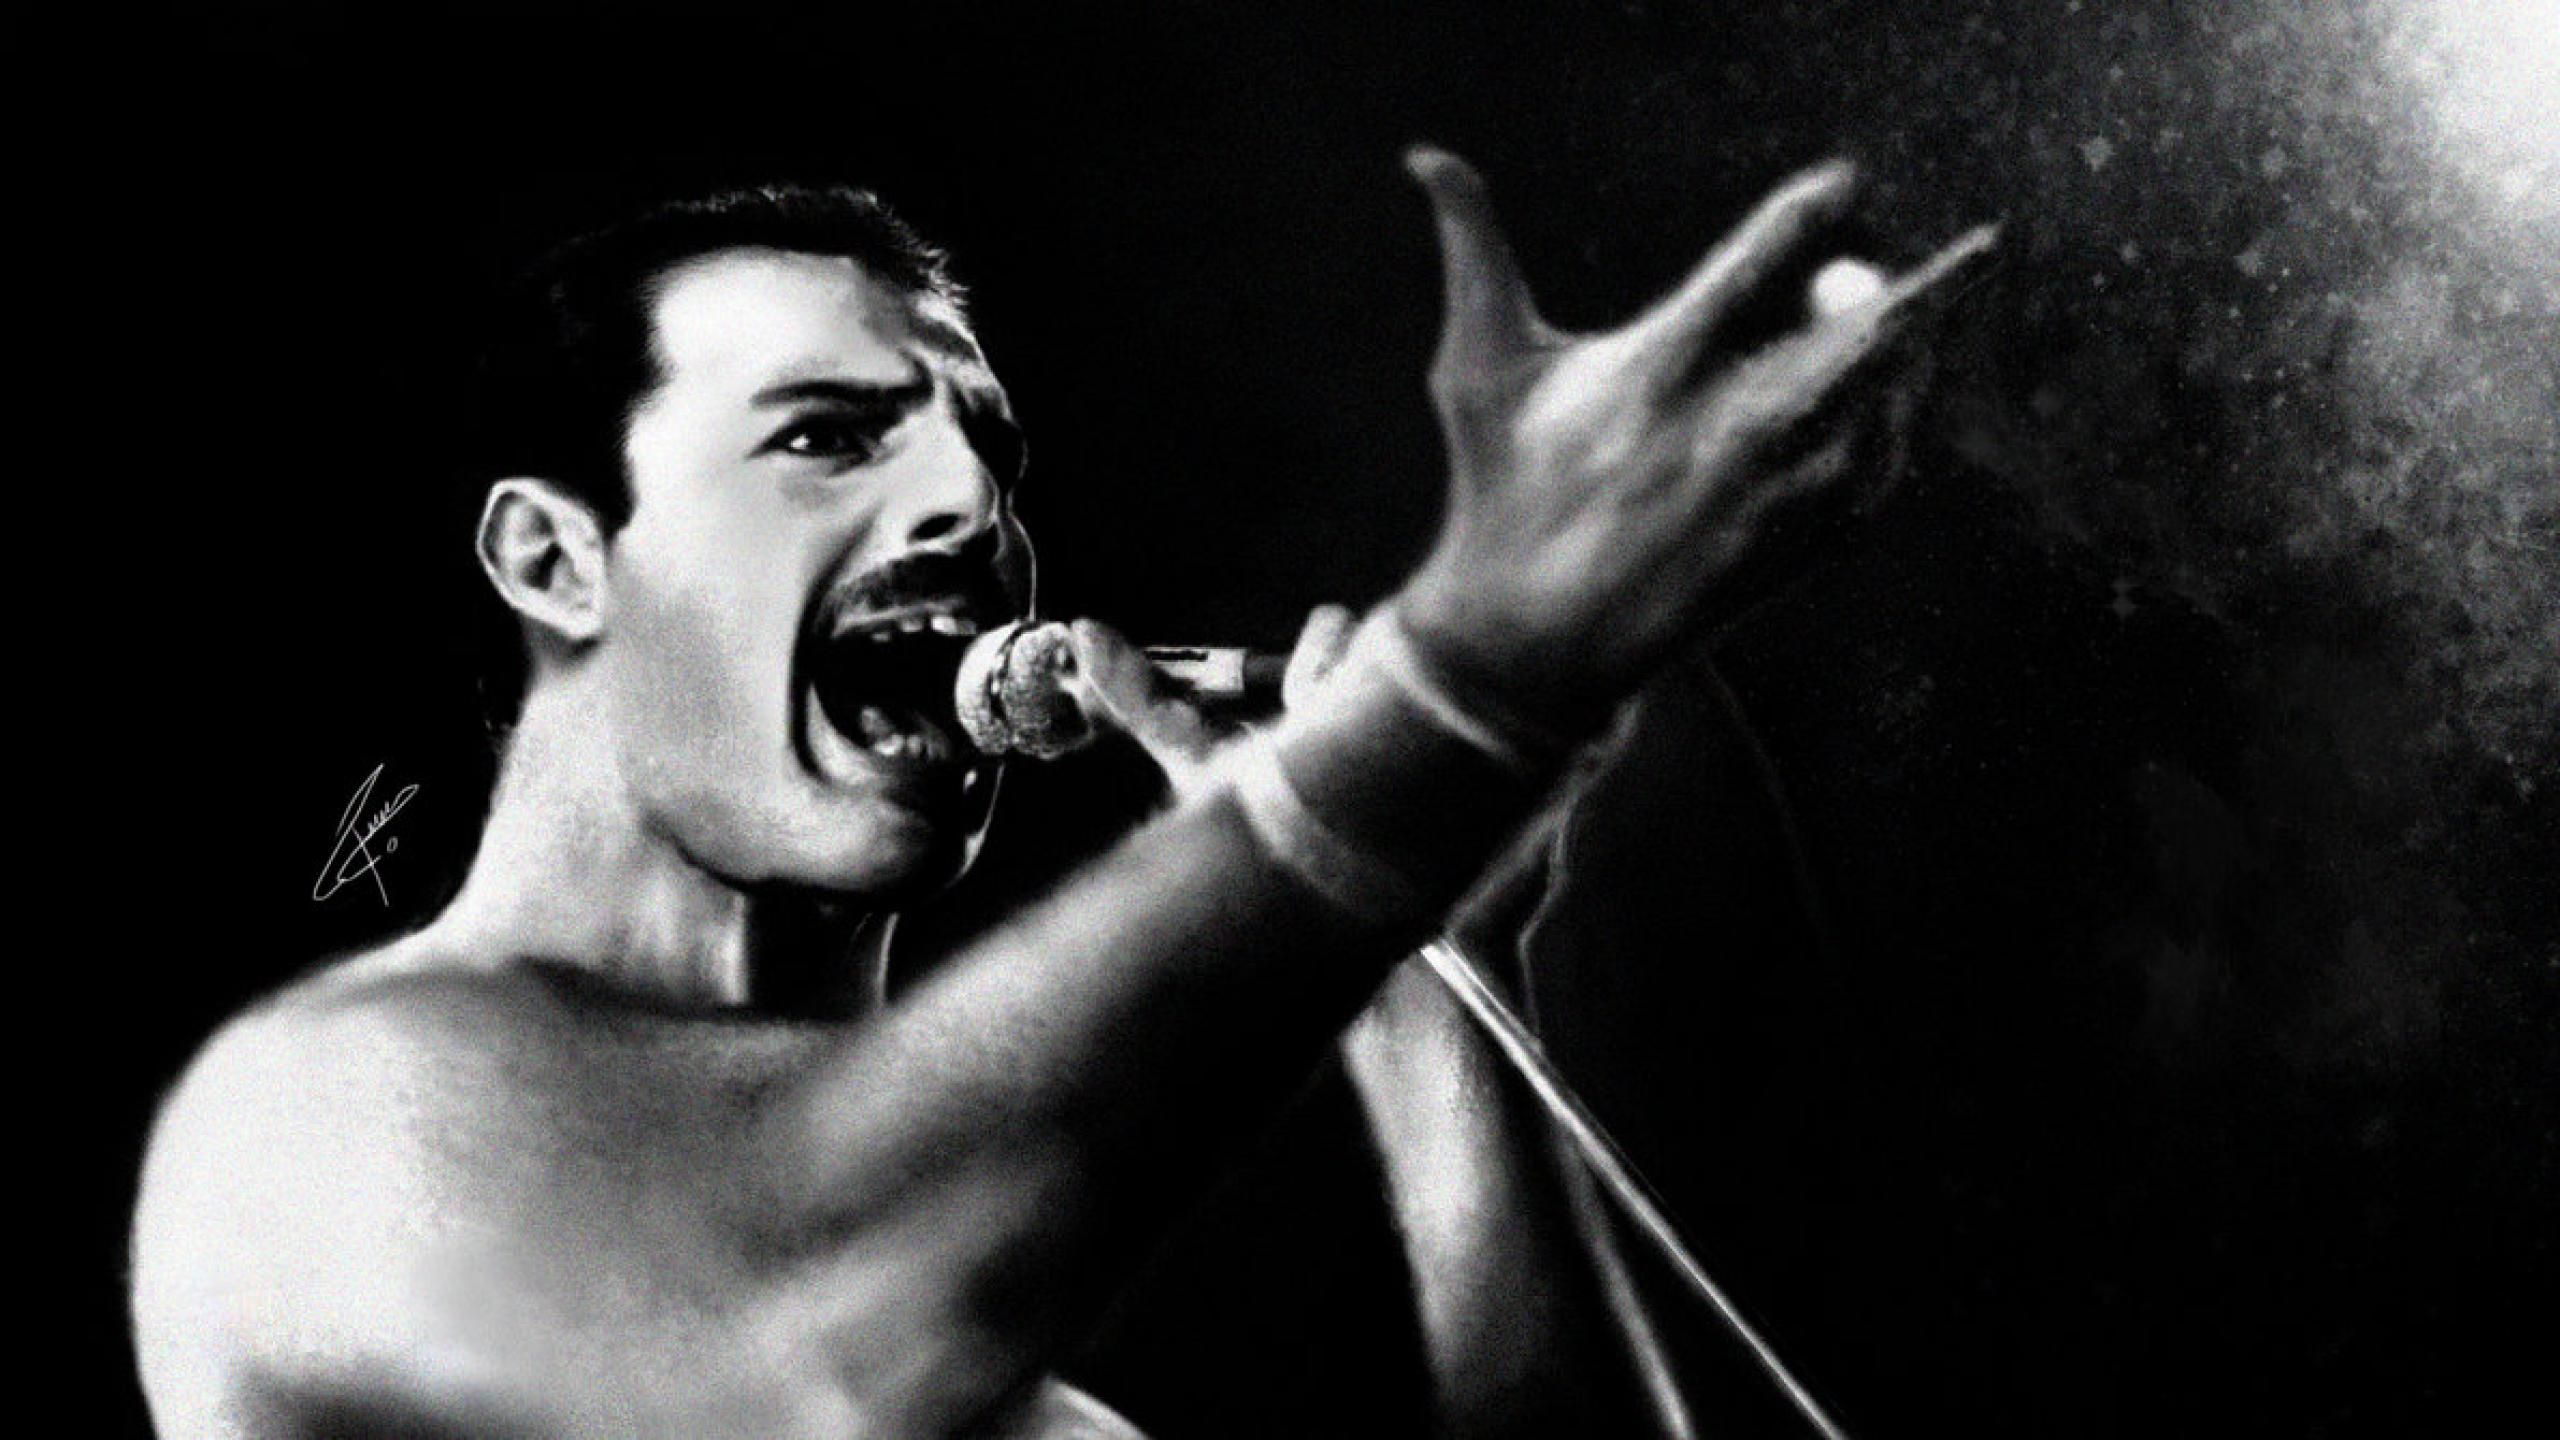 Wallpaper Wiki Freddie Mercury Band Queen 2560x1440 Pic Wpb004282 Wallpaper Wiki Freddie Mercury We Are The Champions Soundtrack To My Life